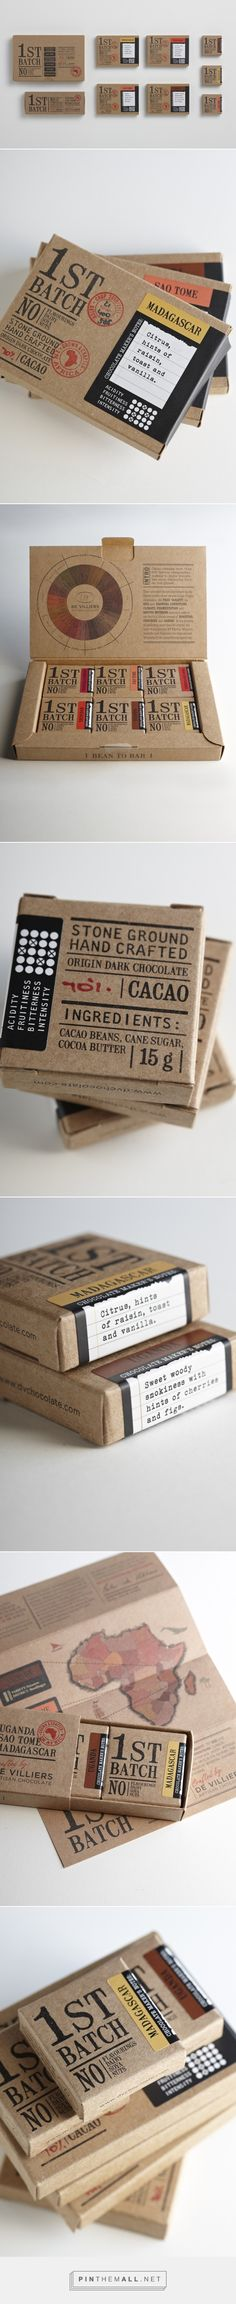 FIRST BATCH CHOCOLATE on Behance  https://www.behance.net/gallery/FIRST-BATCH-CHOCOLATE/9718655 - created via http://pinthemall.net